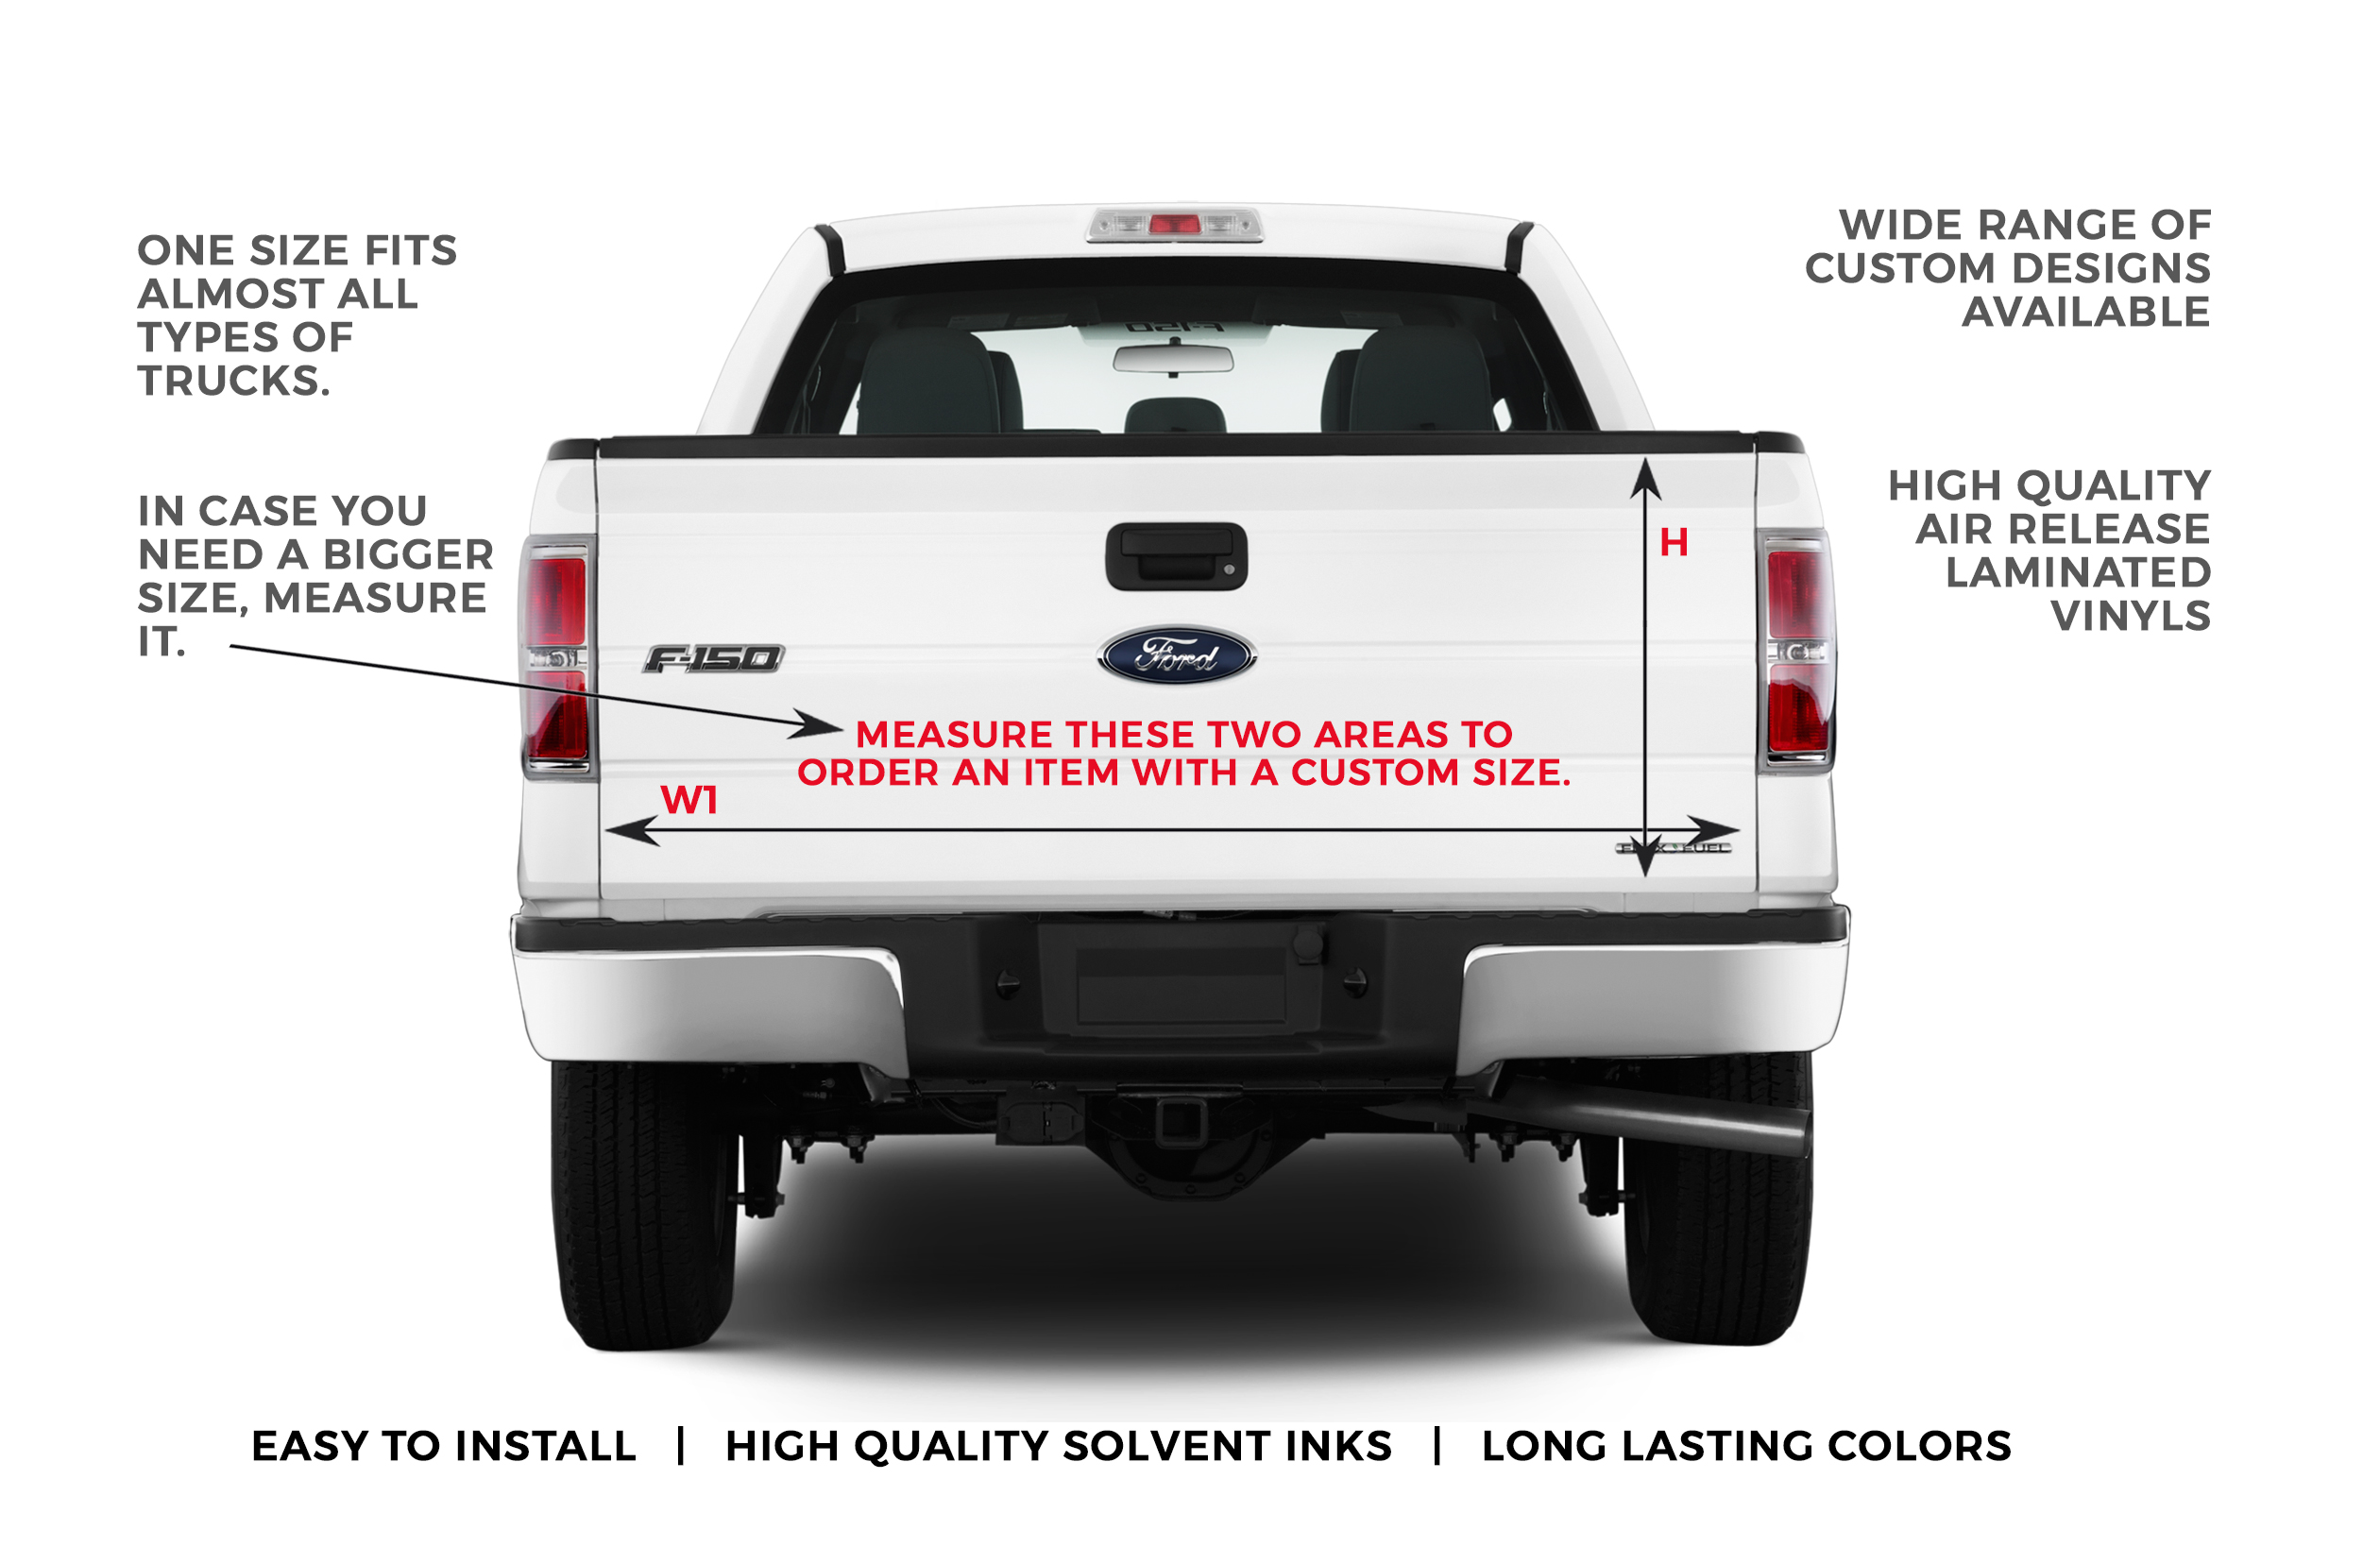 USA Independence Statue of Liberty Pick-Up Truck Perforated Rear Window Wrap